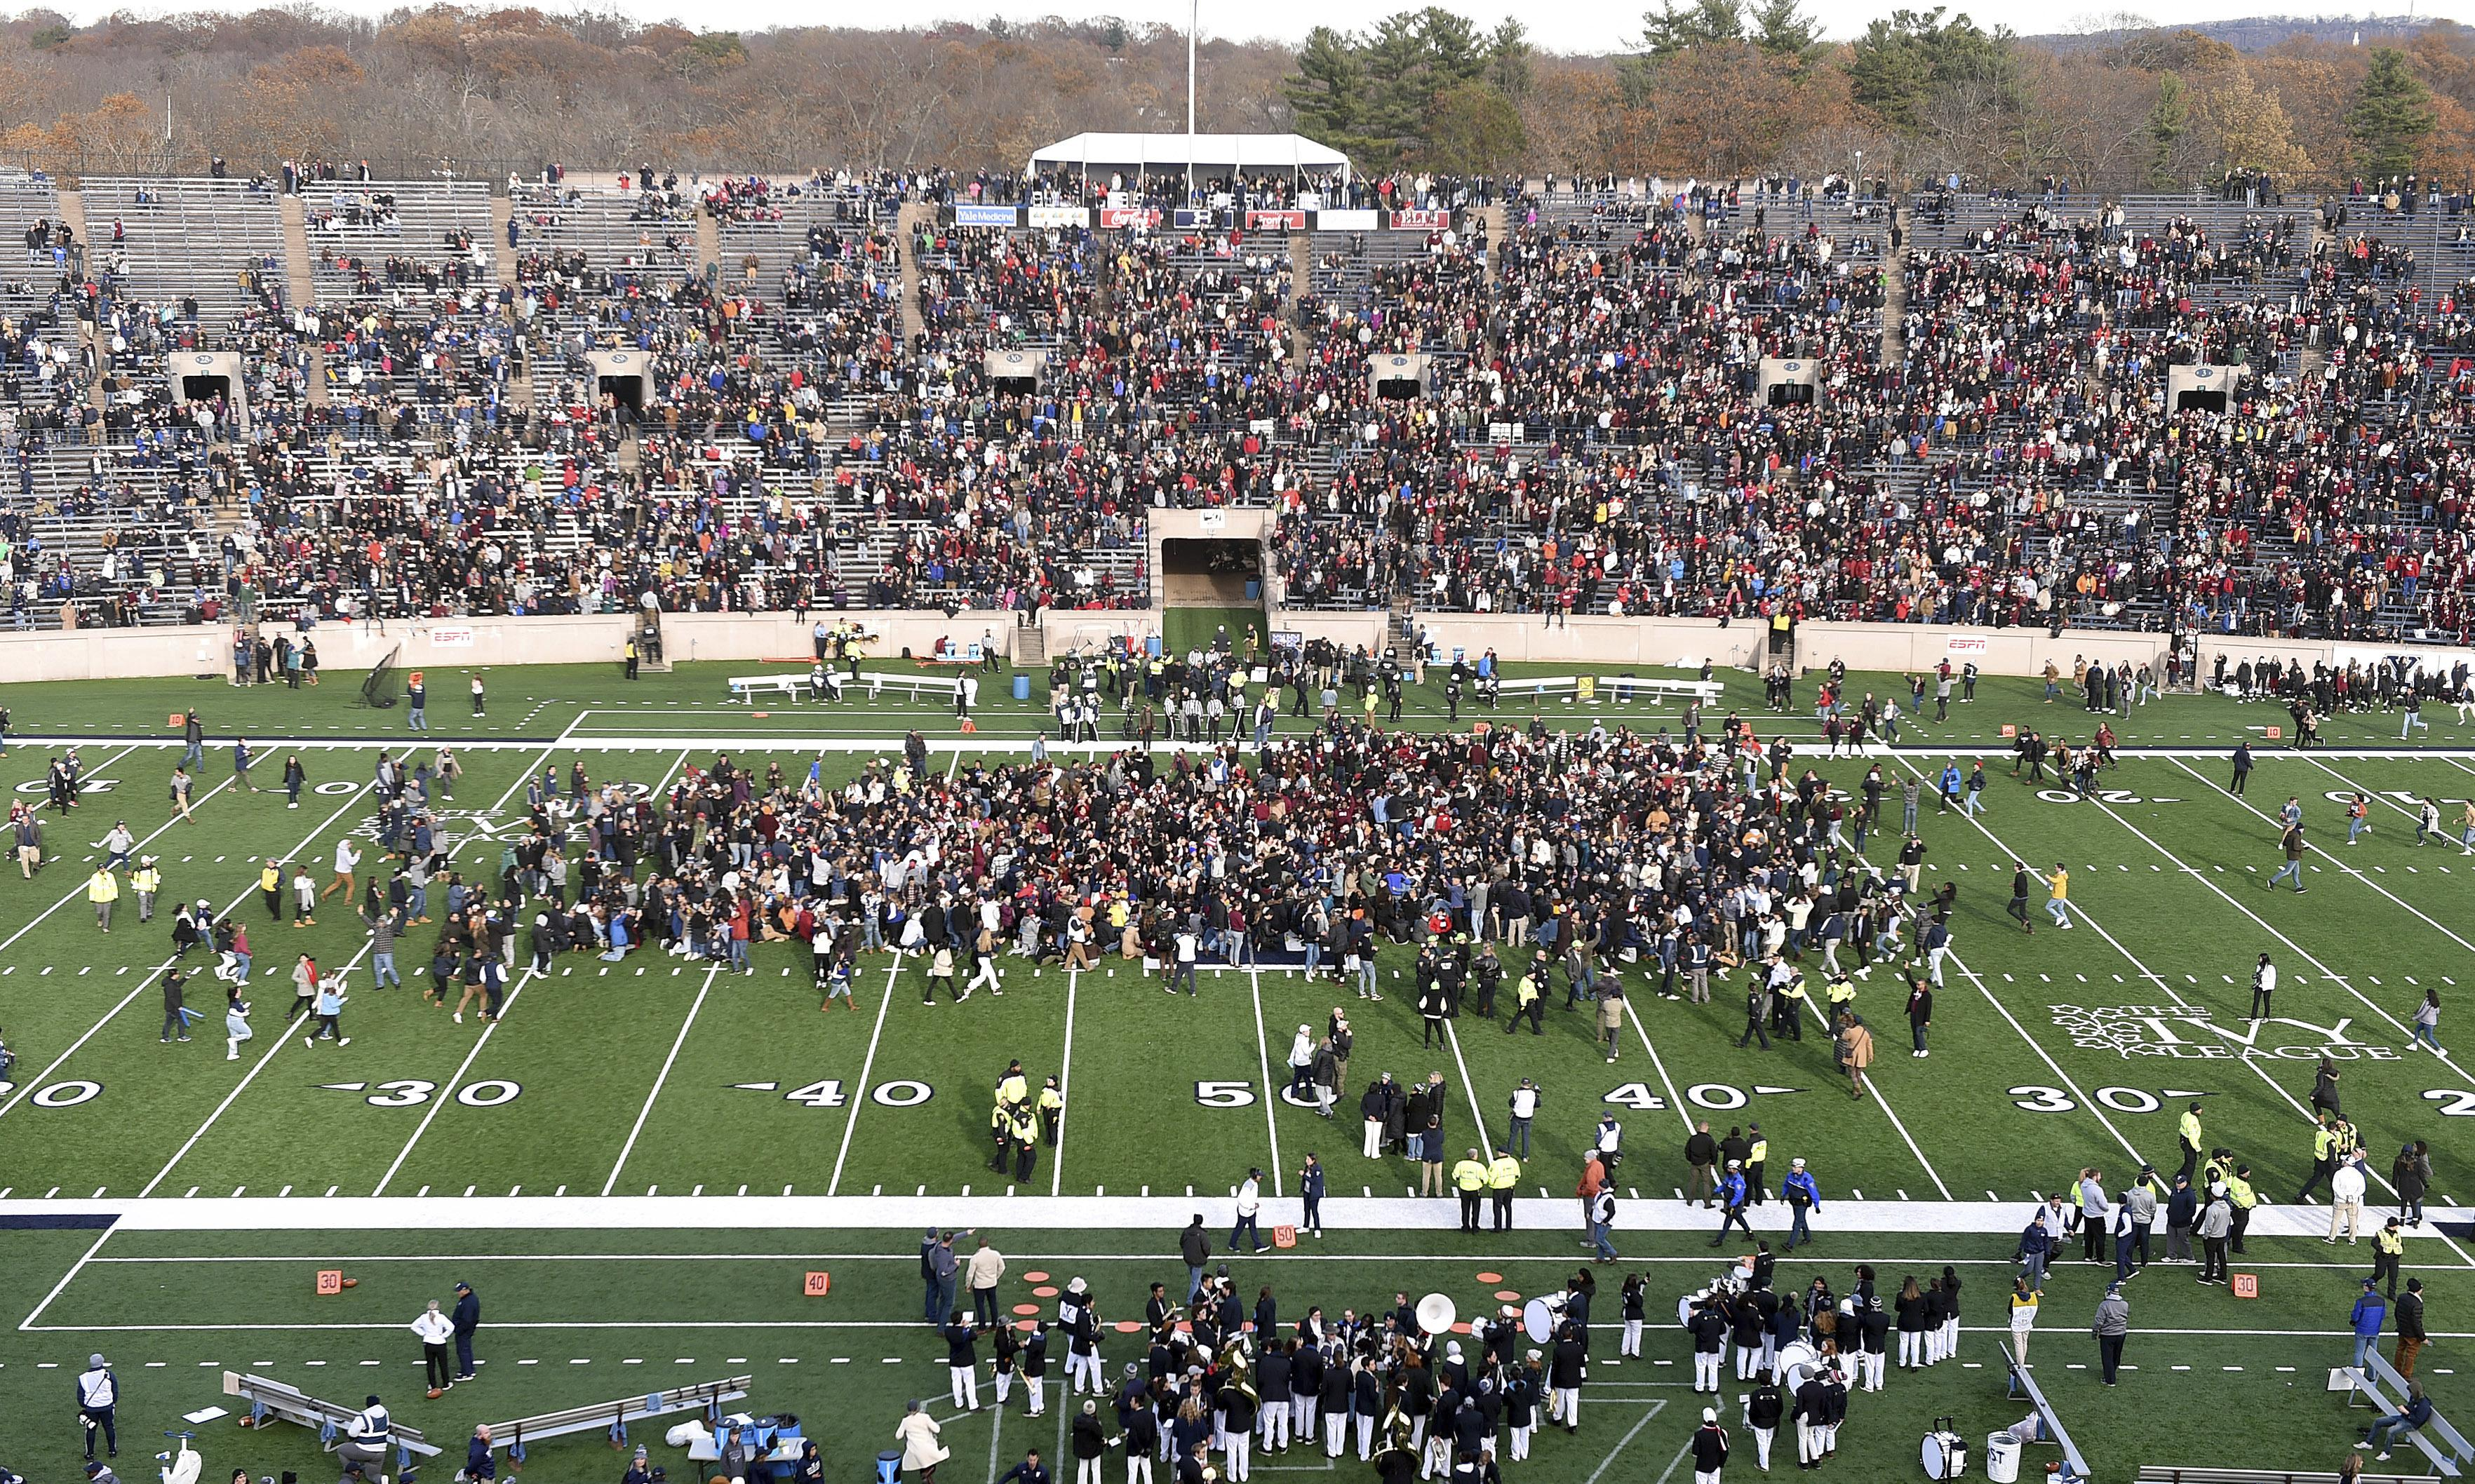 Harvard and Yale students disrupt football game for fossil fuel protest